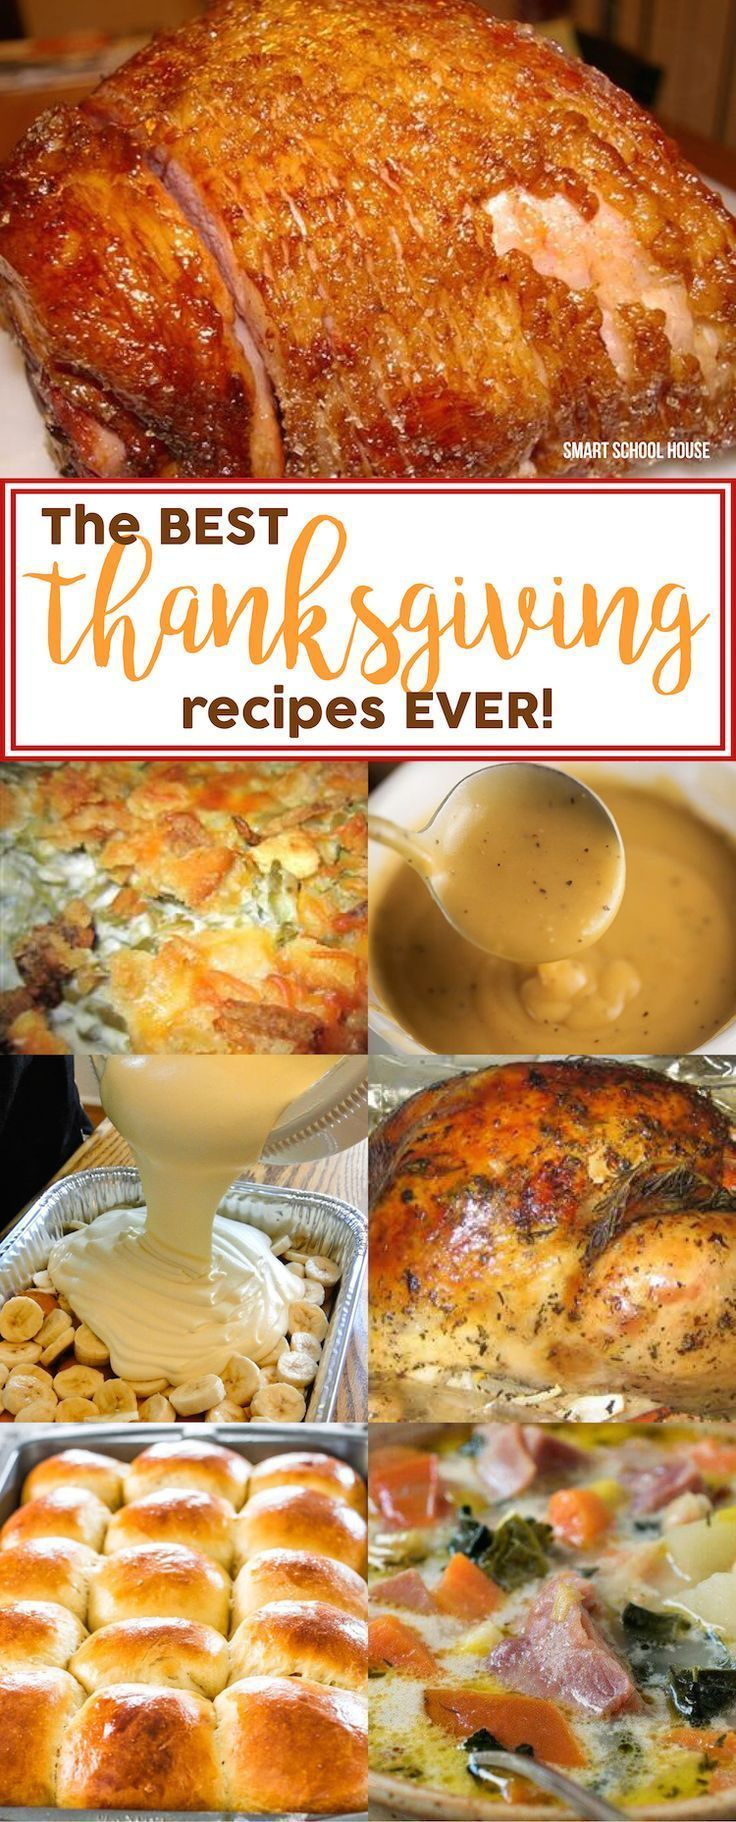 The Only 25 Thanksgiving Recipes Youll Ever Need pictures